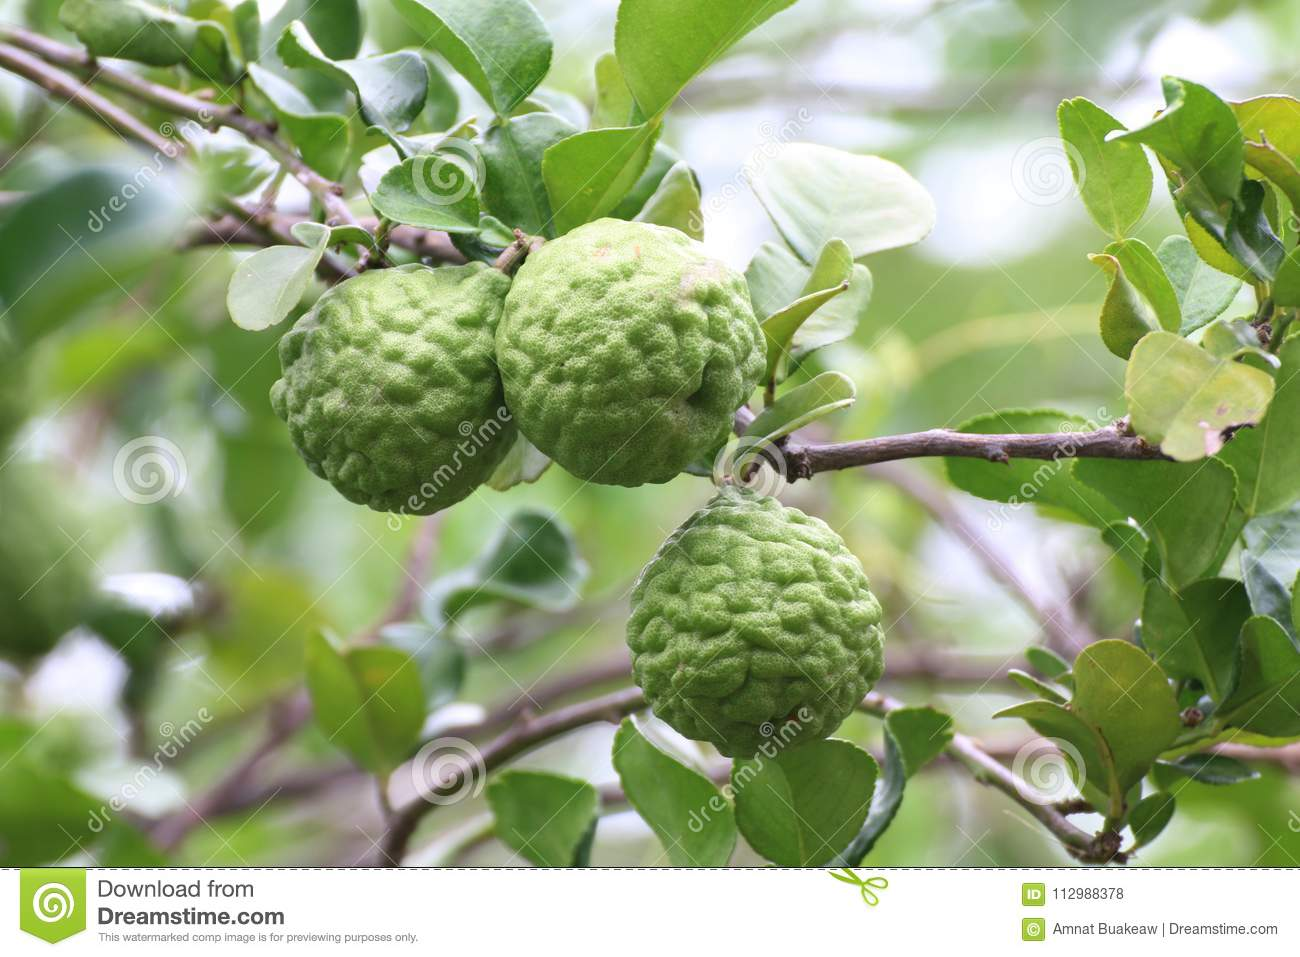 Bergamot, kaffir Lime Leaf farm tree nature Herb for Bergamot Oil